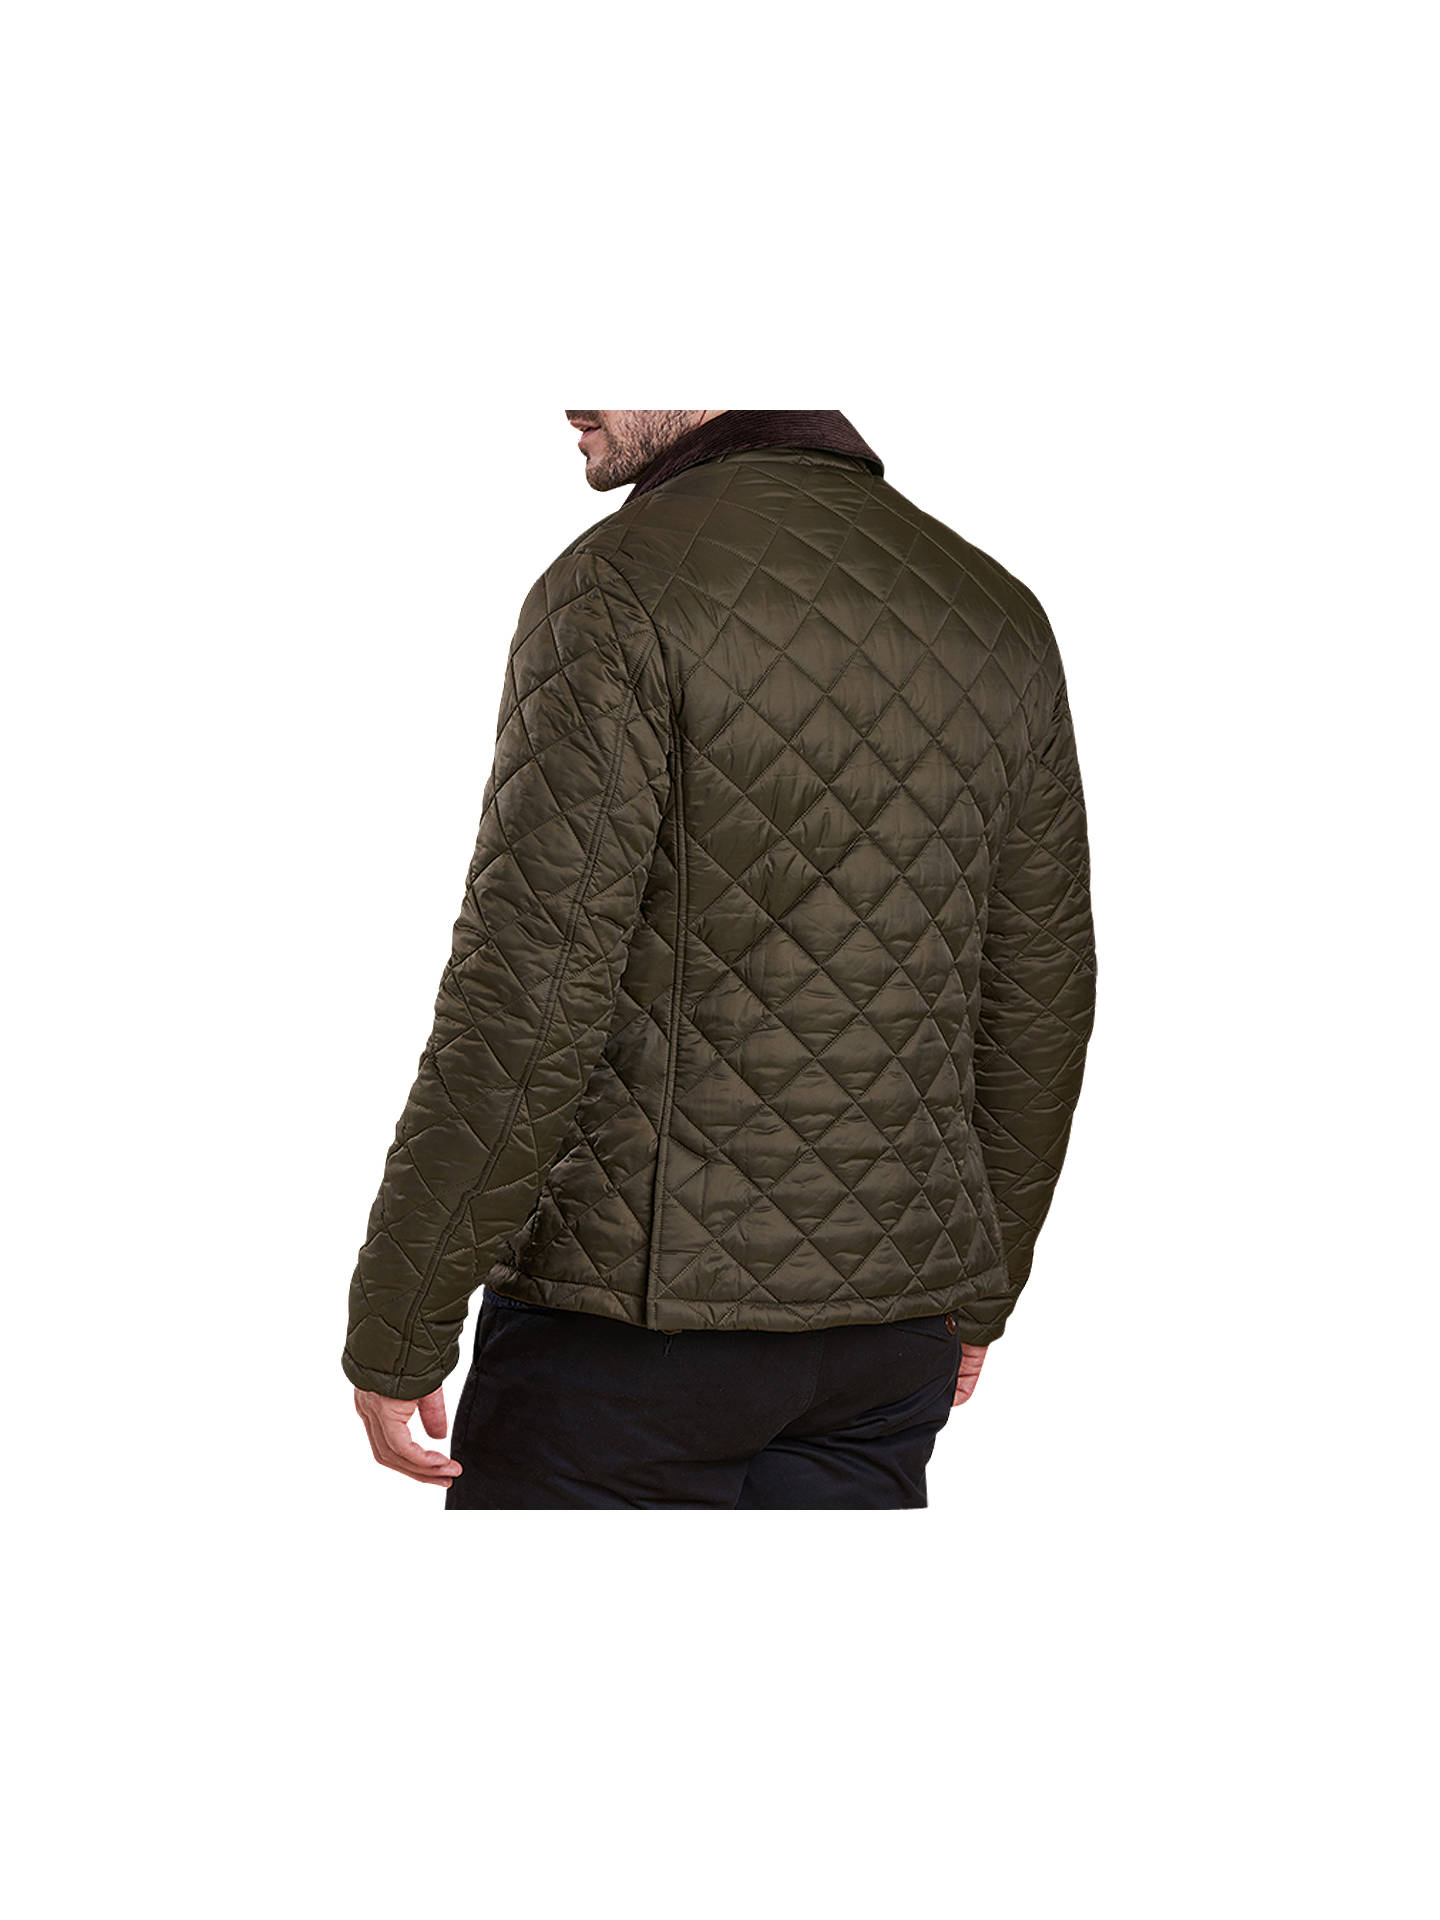 BuyBarbour Land Rover Defender Mulbarton Quilted Jacket, Olive, L Online at johnlewis.com